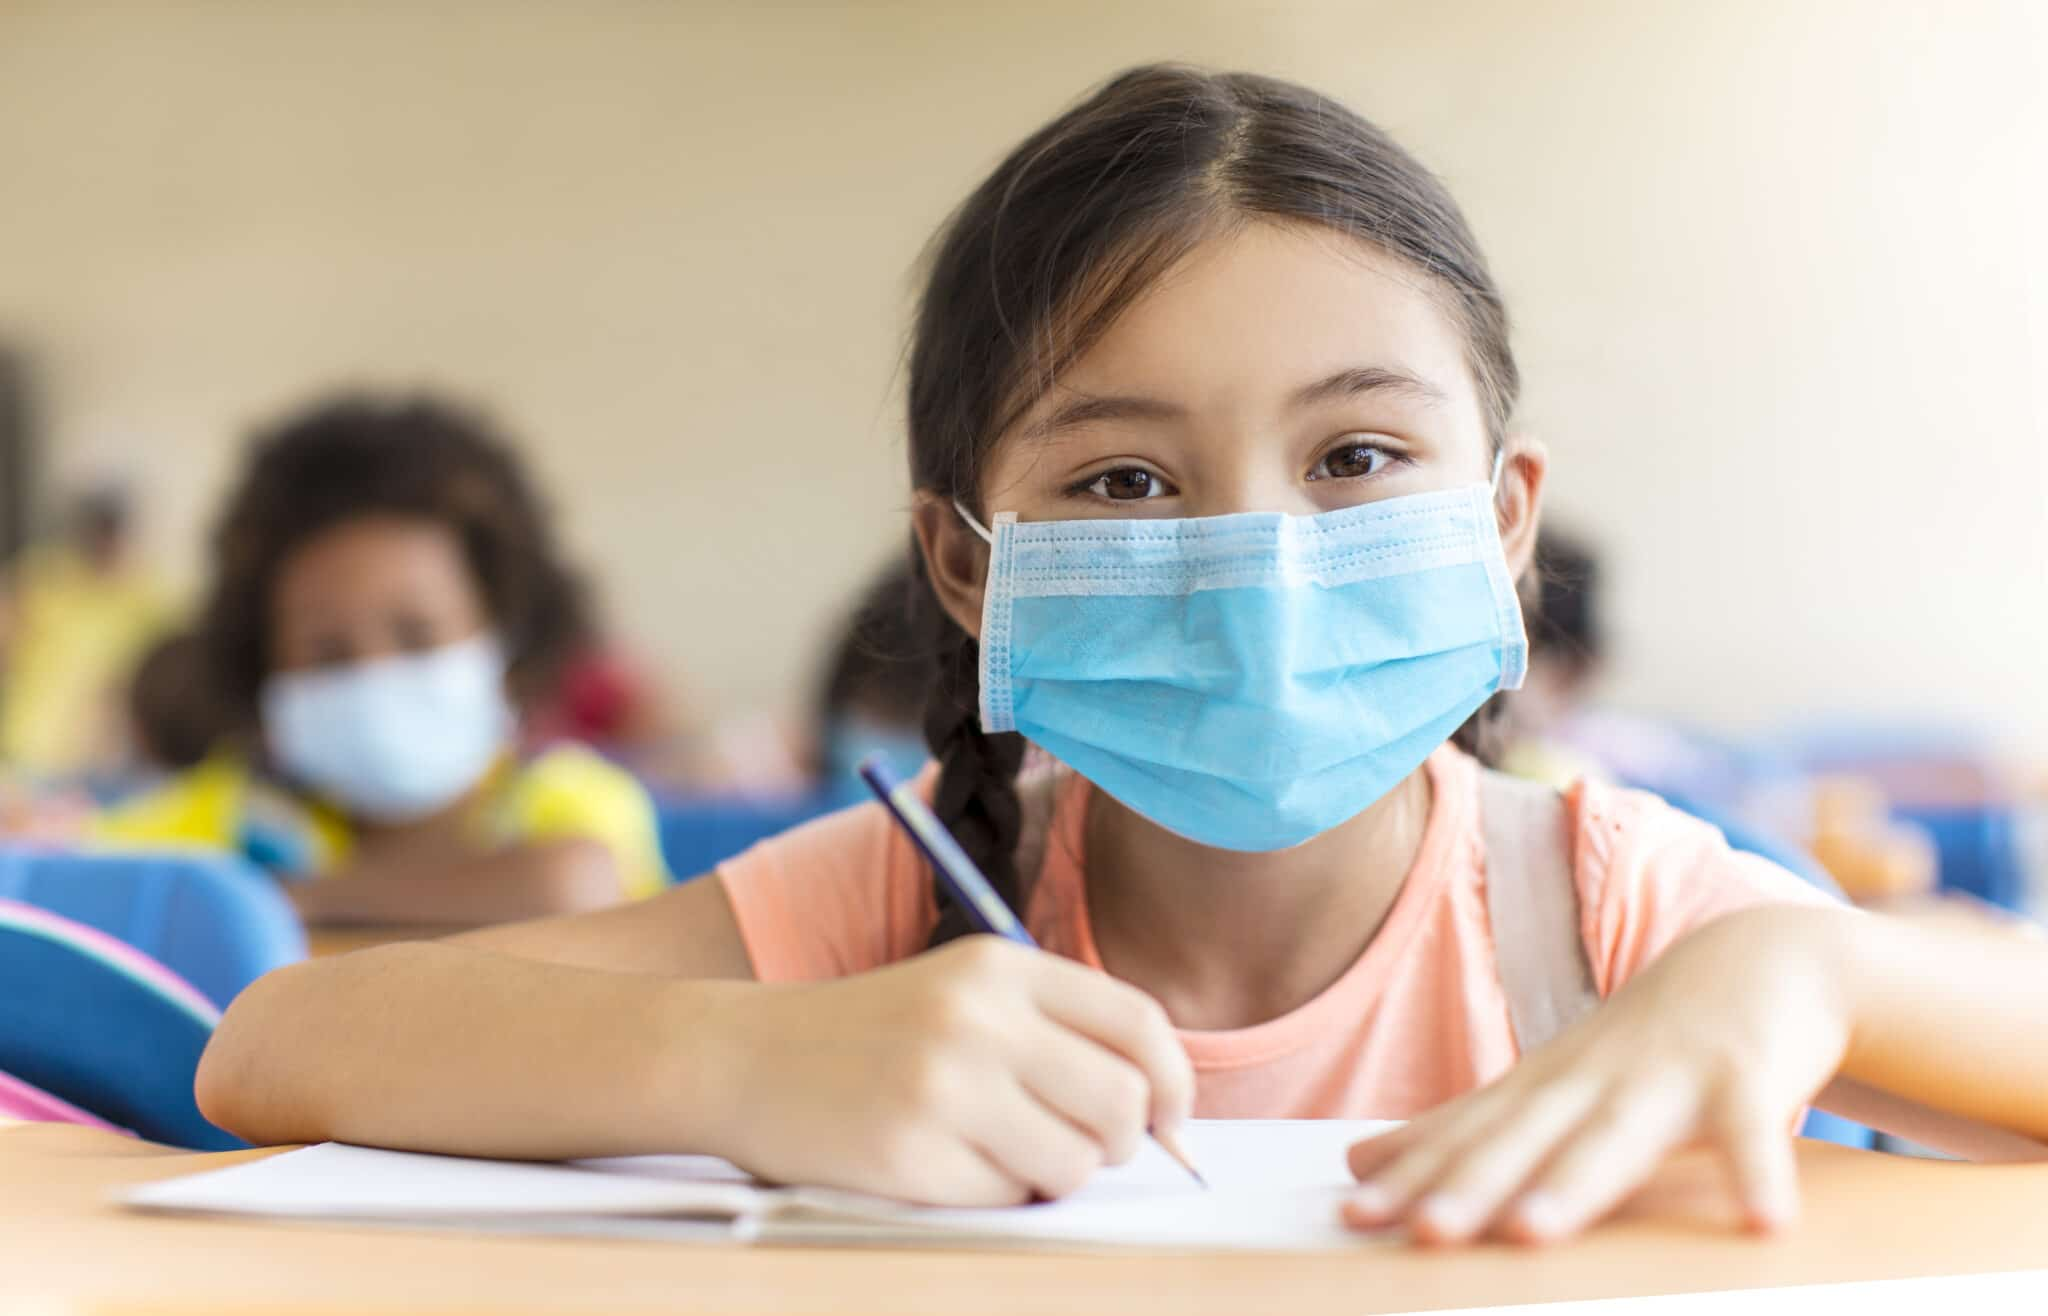 child's allergy and asthma care